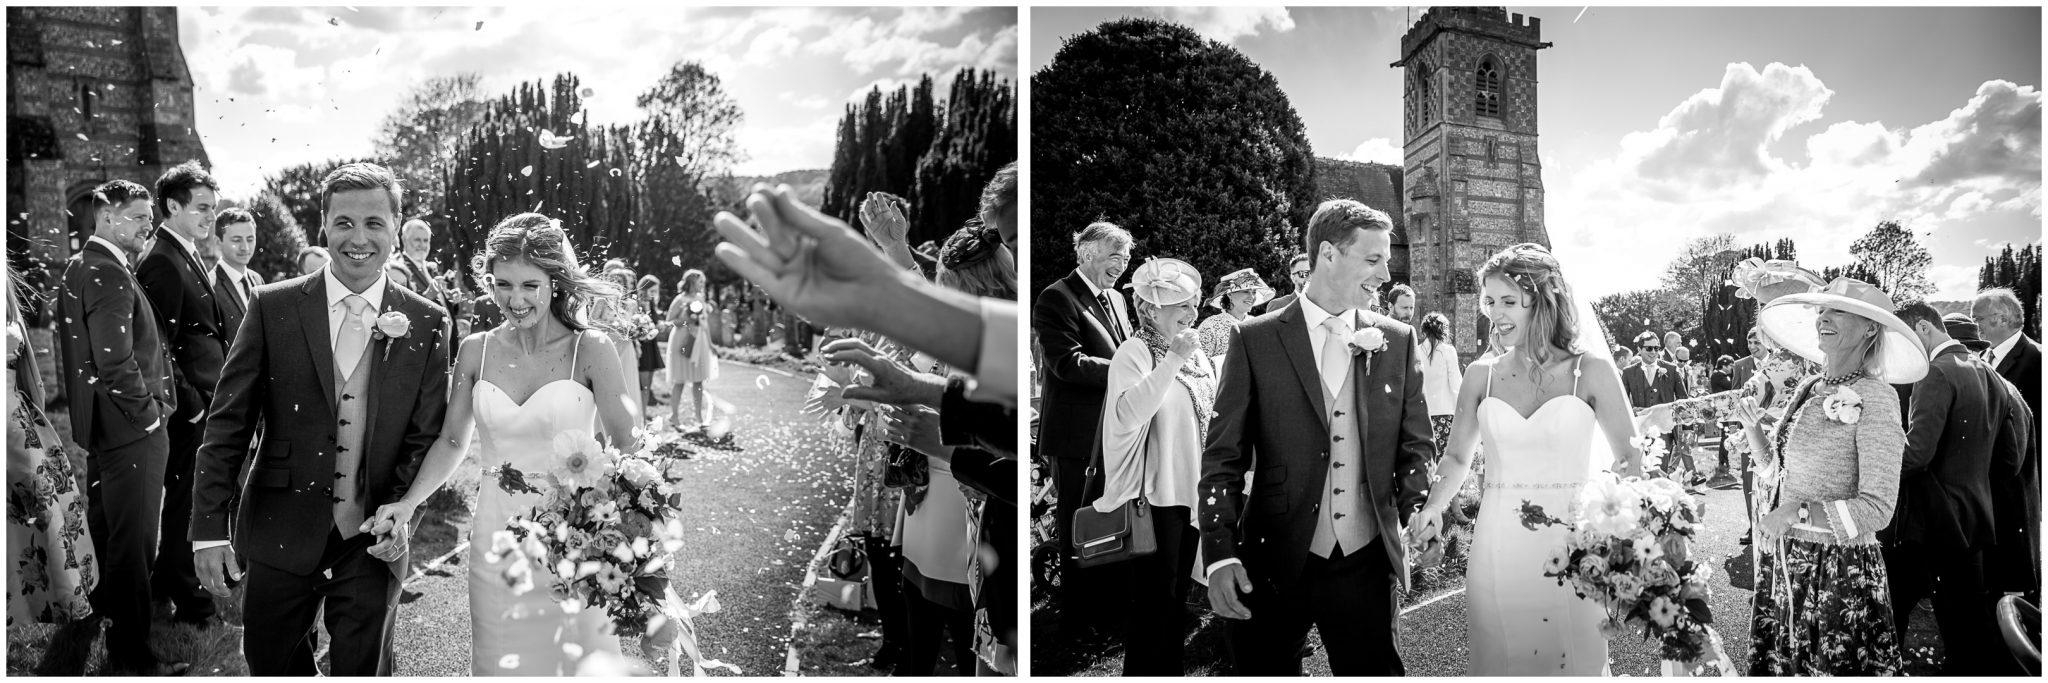 Black and white confetti photos